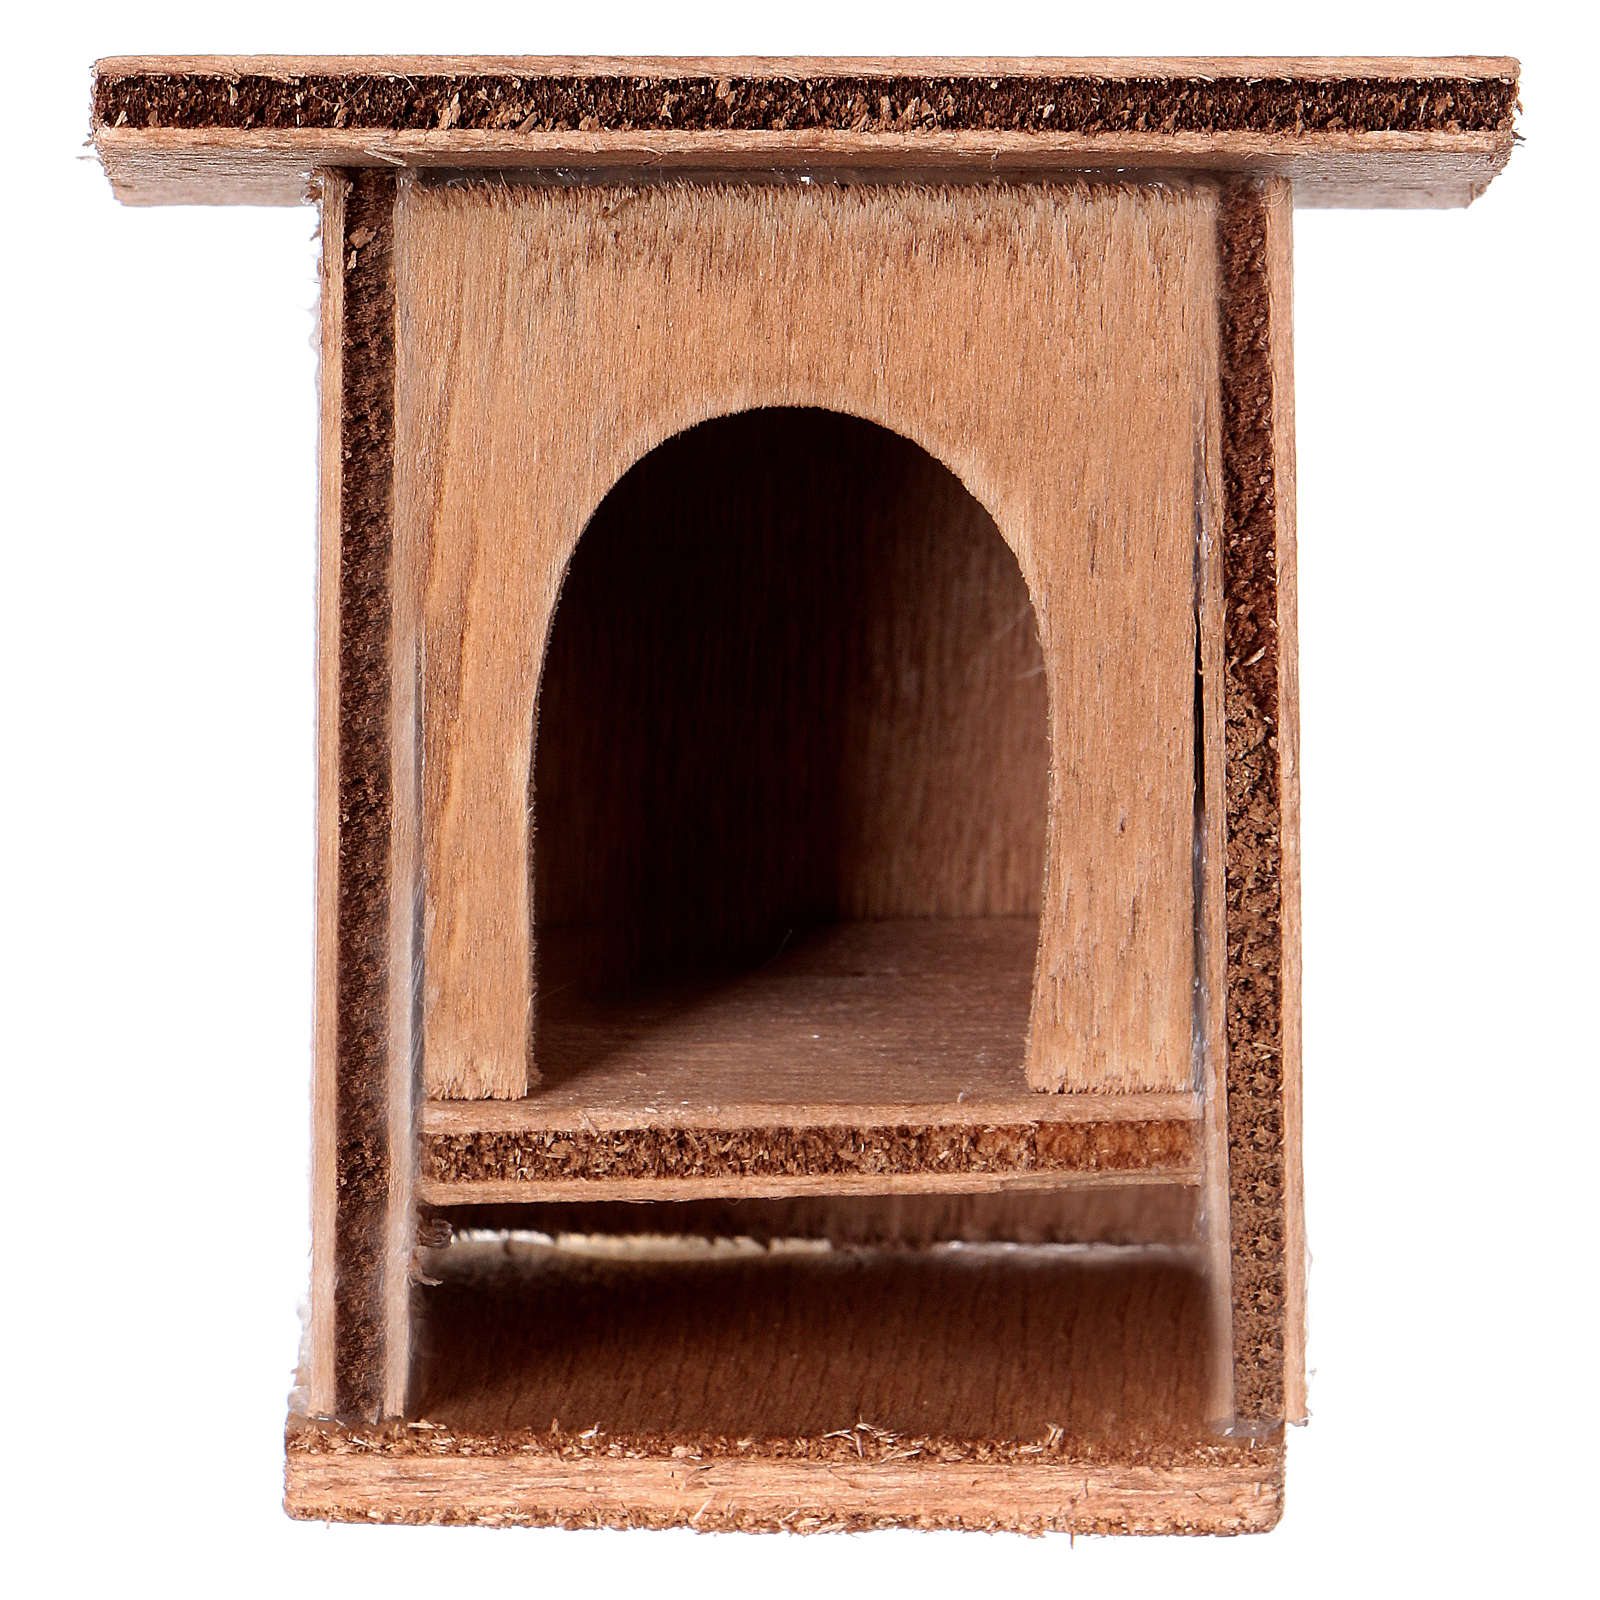 Nativity Scene accessory, wooden rabbit hutch 8 - 10cm 3